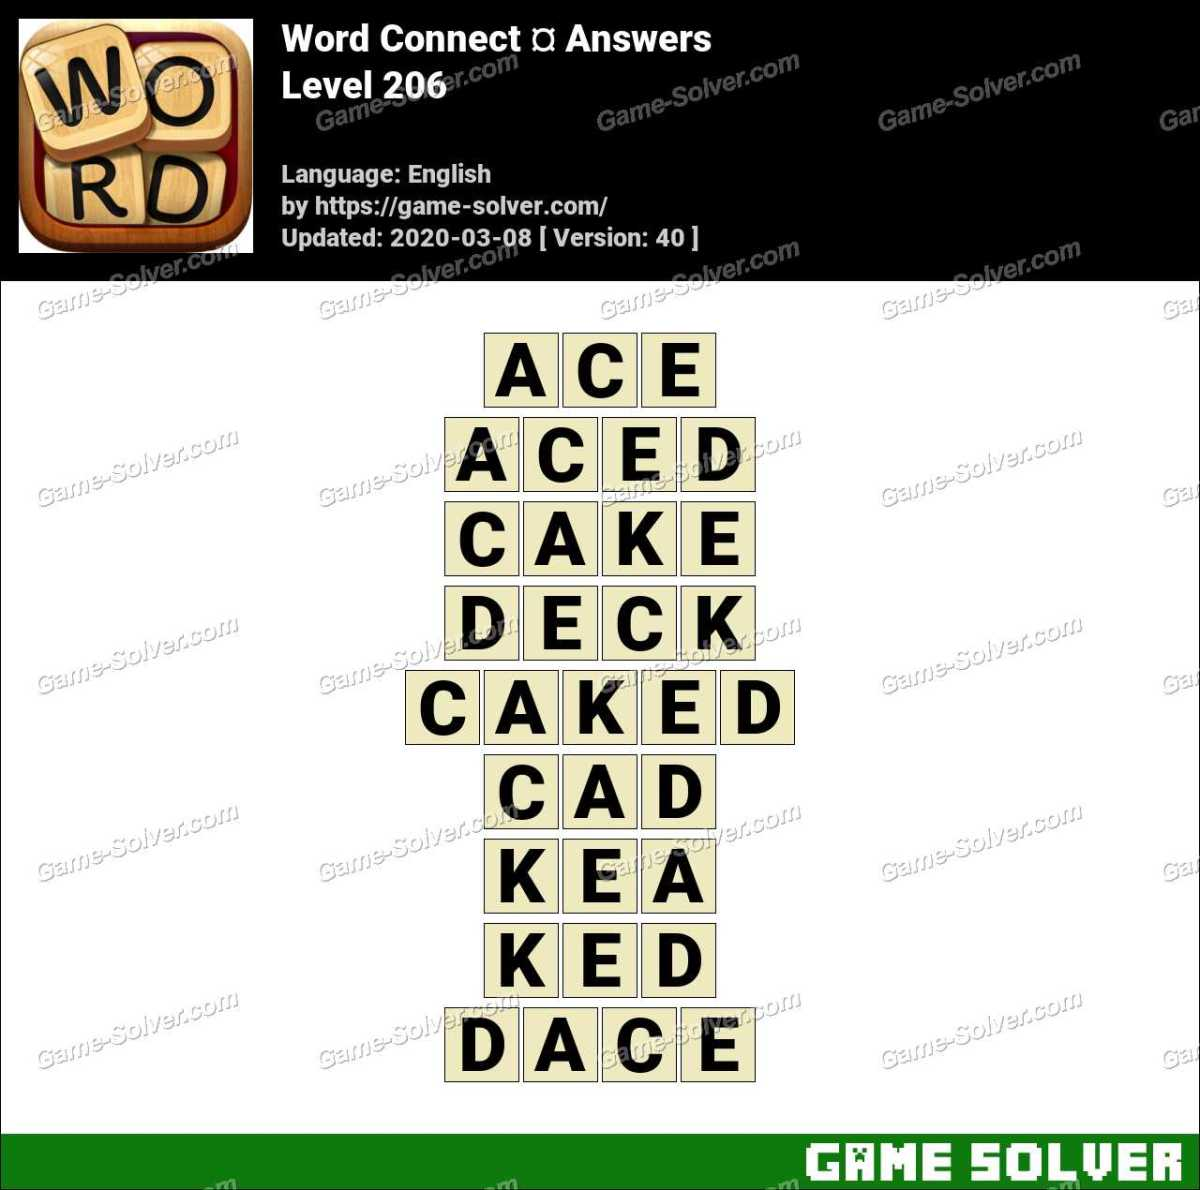 Word Connect Level 206 Answers